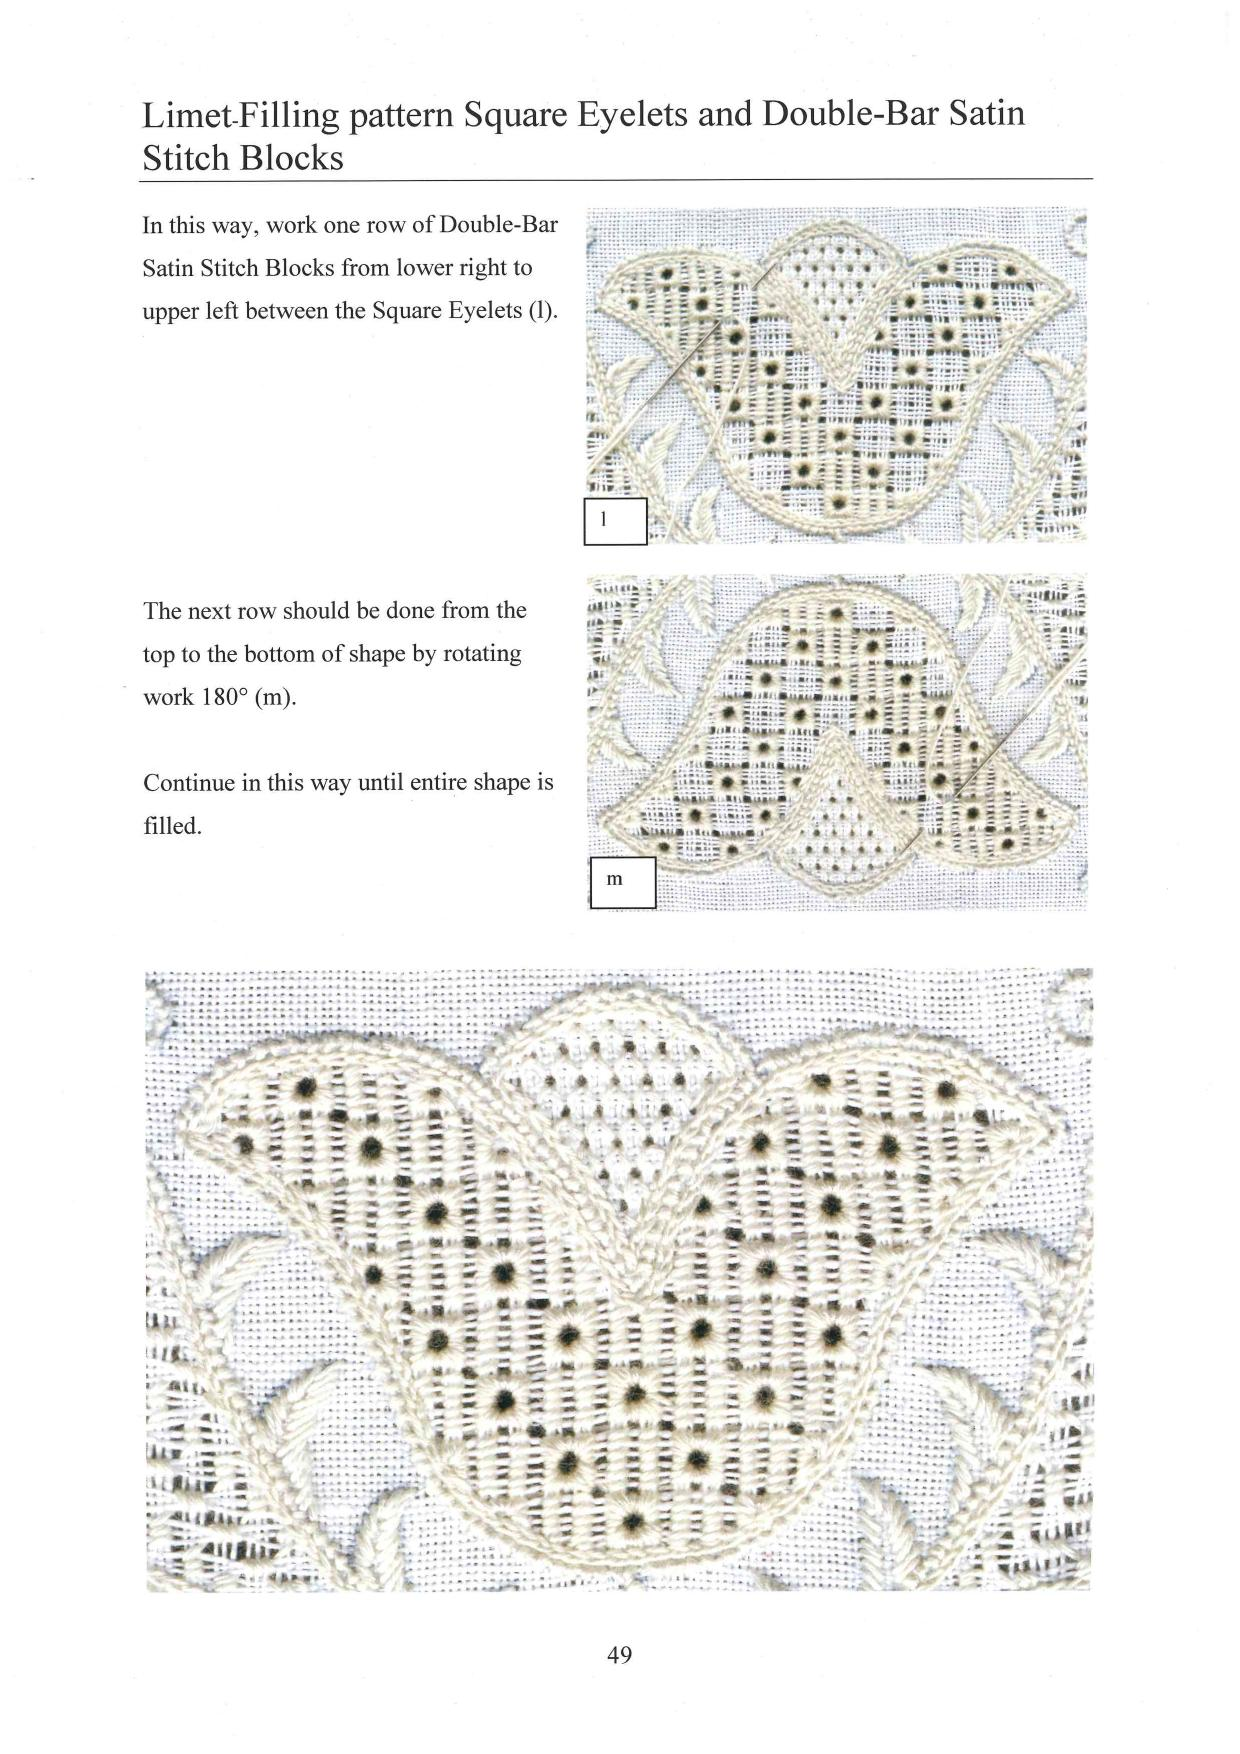 Basic Principles of Schwalm Whitework 8 / 8